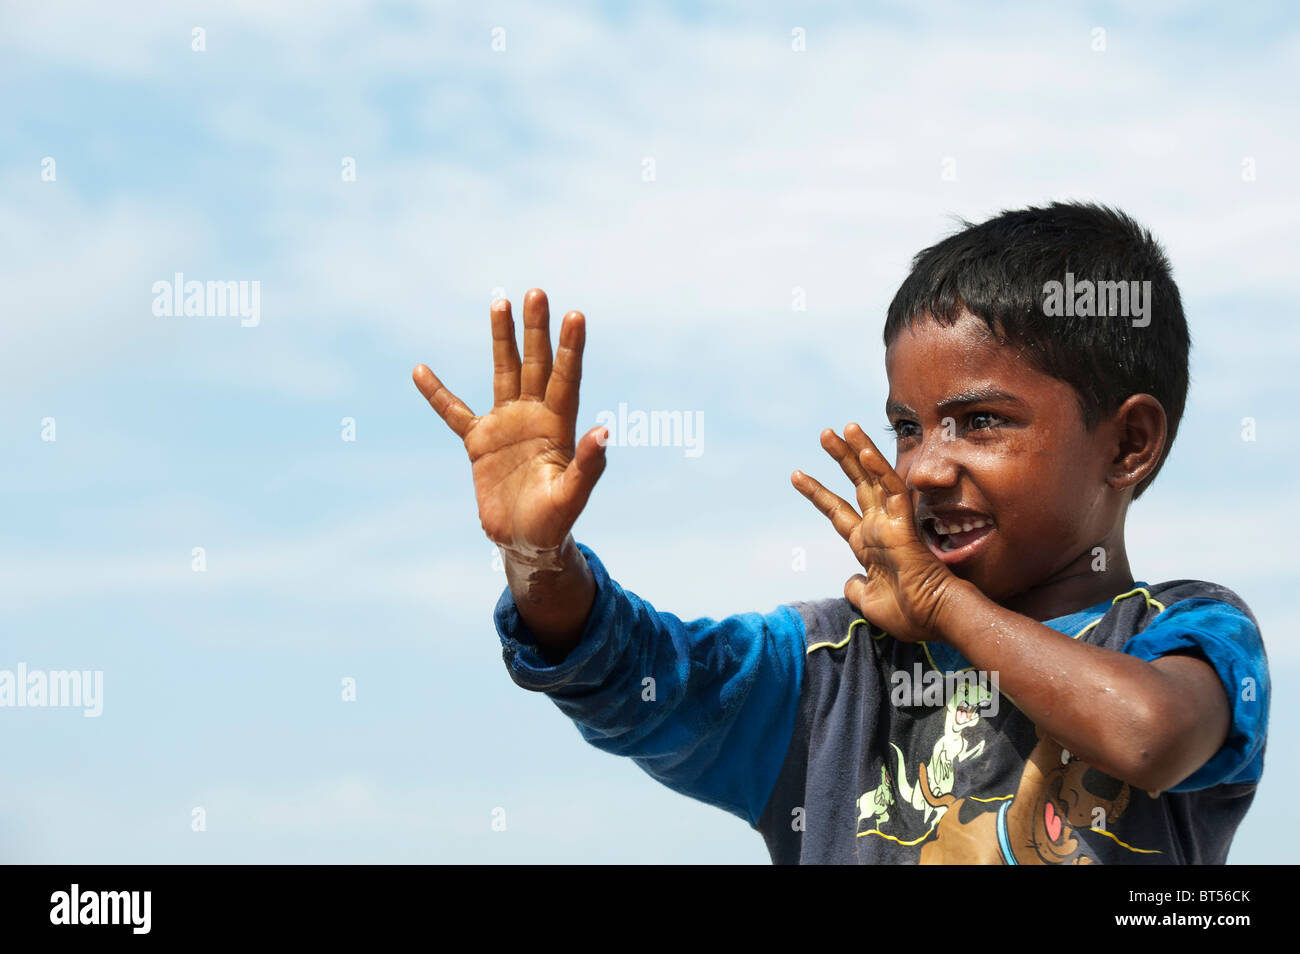 Indian boy just before being splashed with water. India - Stock Image